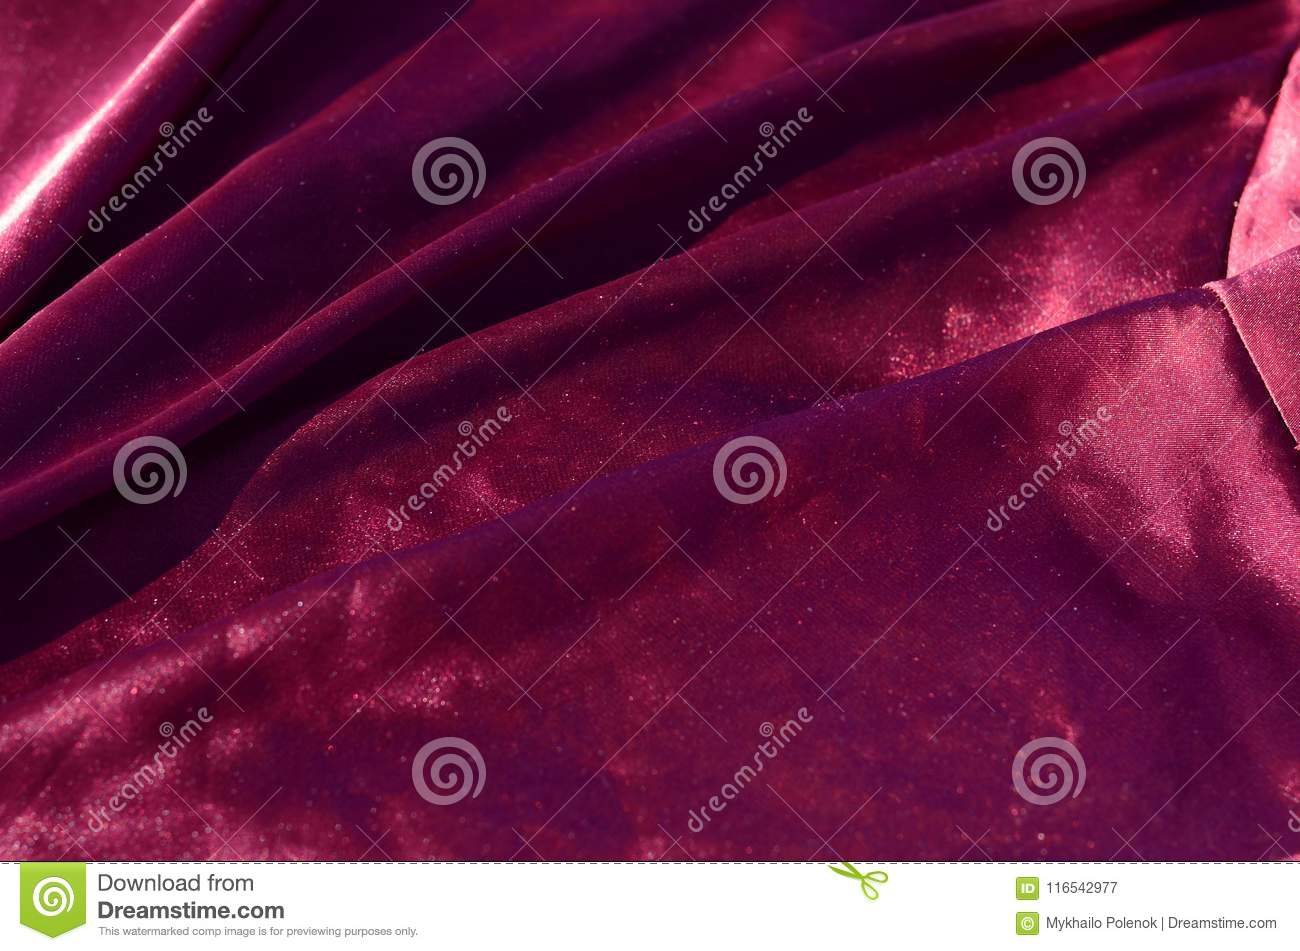 Abstract background luxury cloth or liquid wave or wavy folds of grunge silk texture satin velvet material or luxurious Christmas